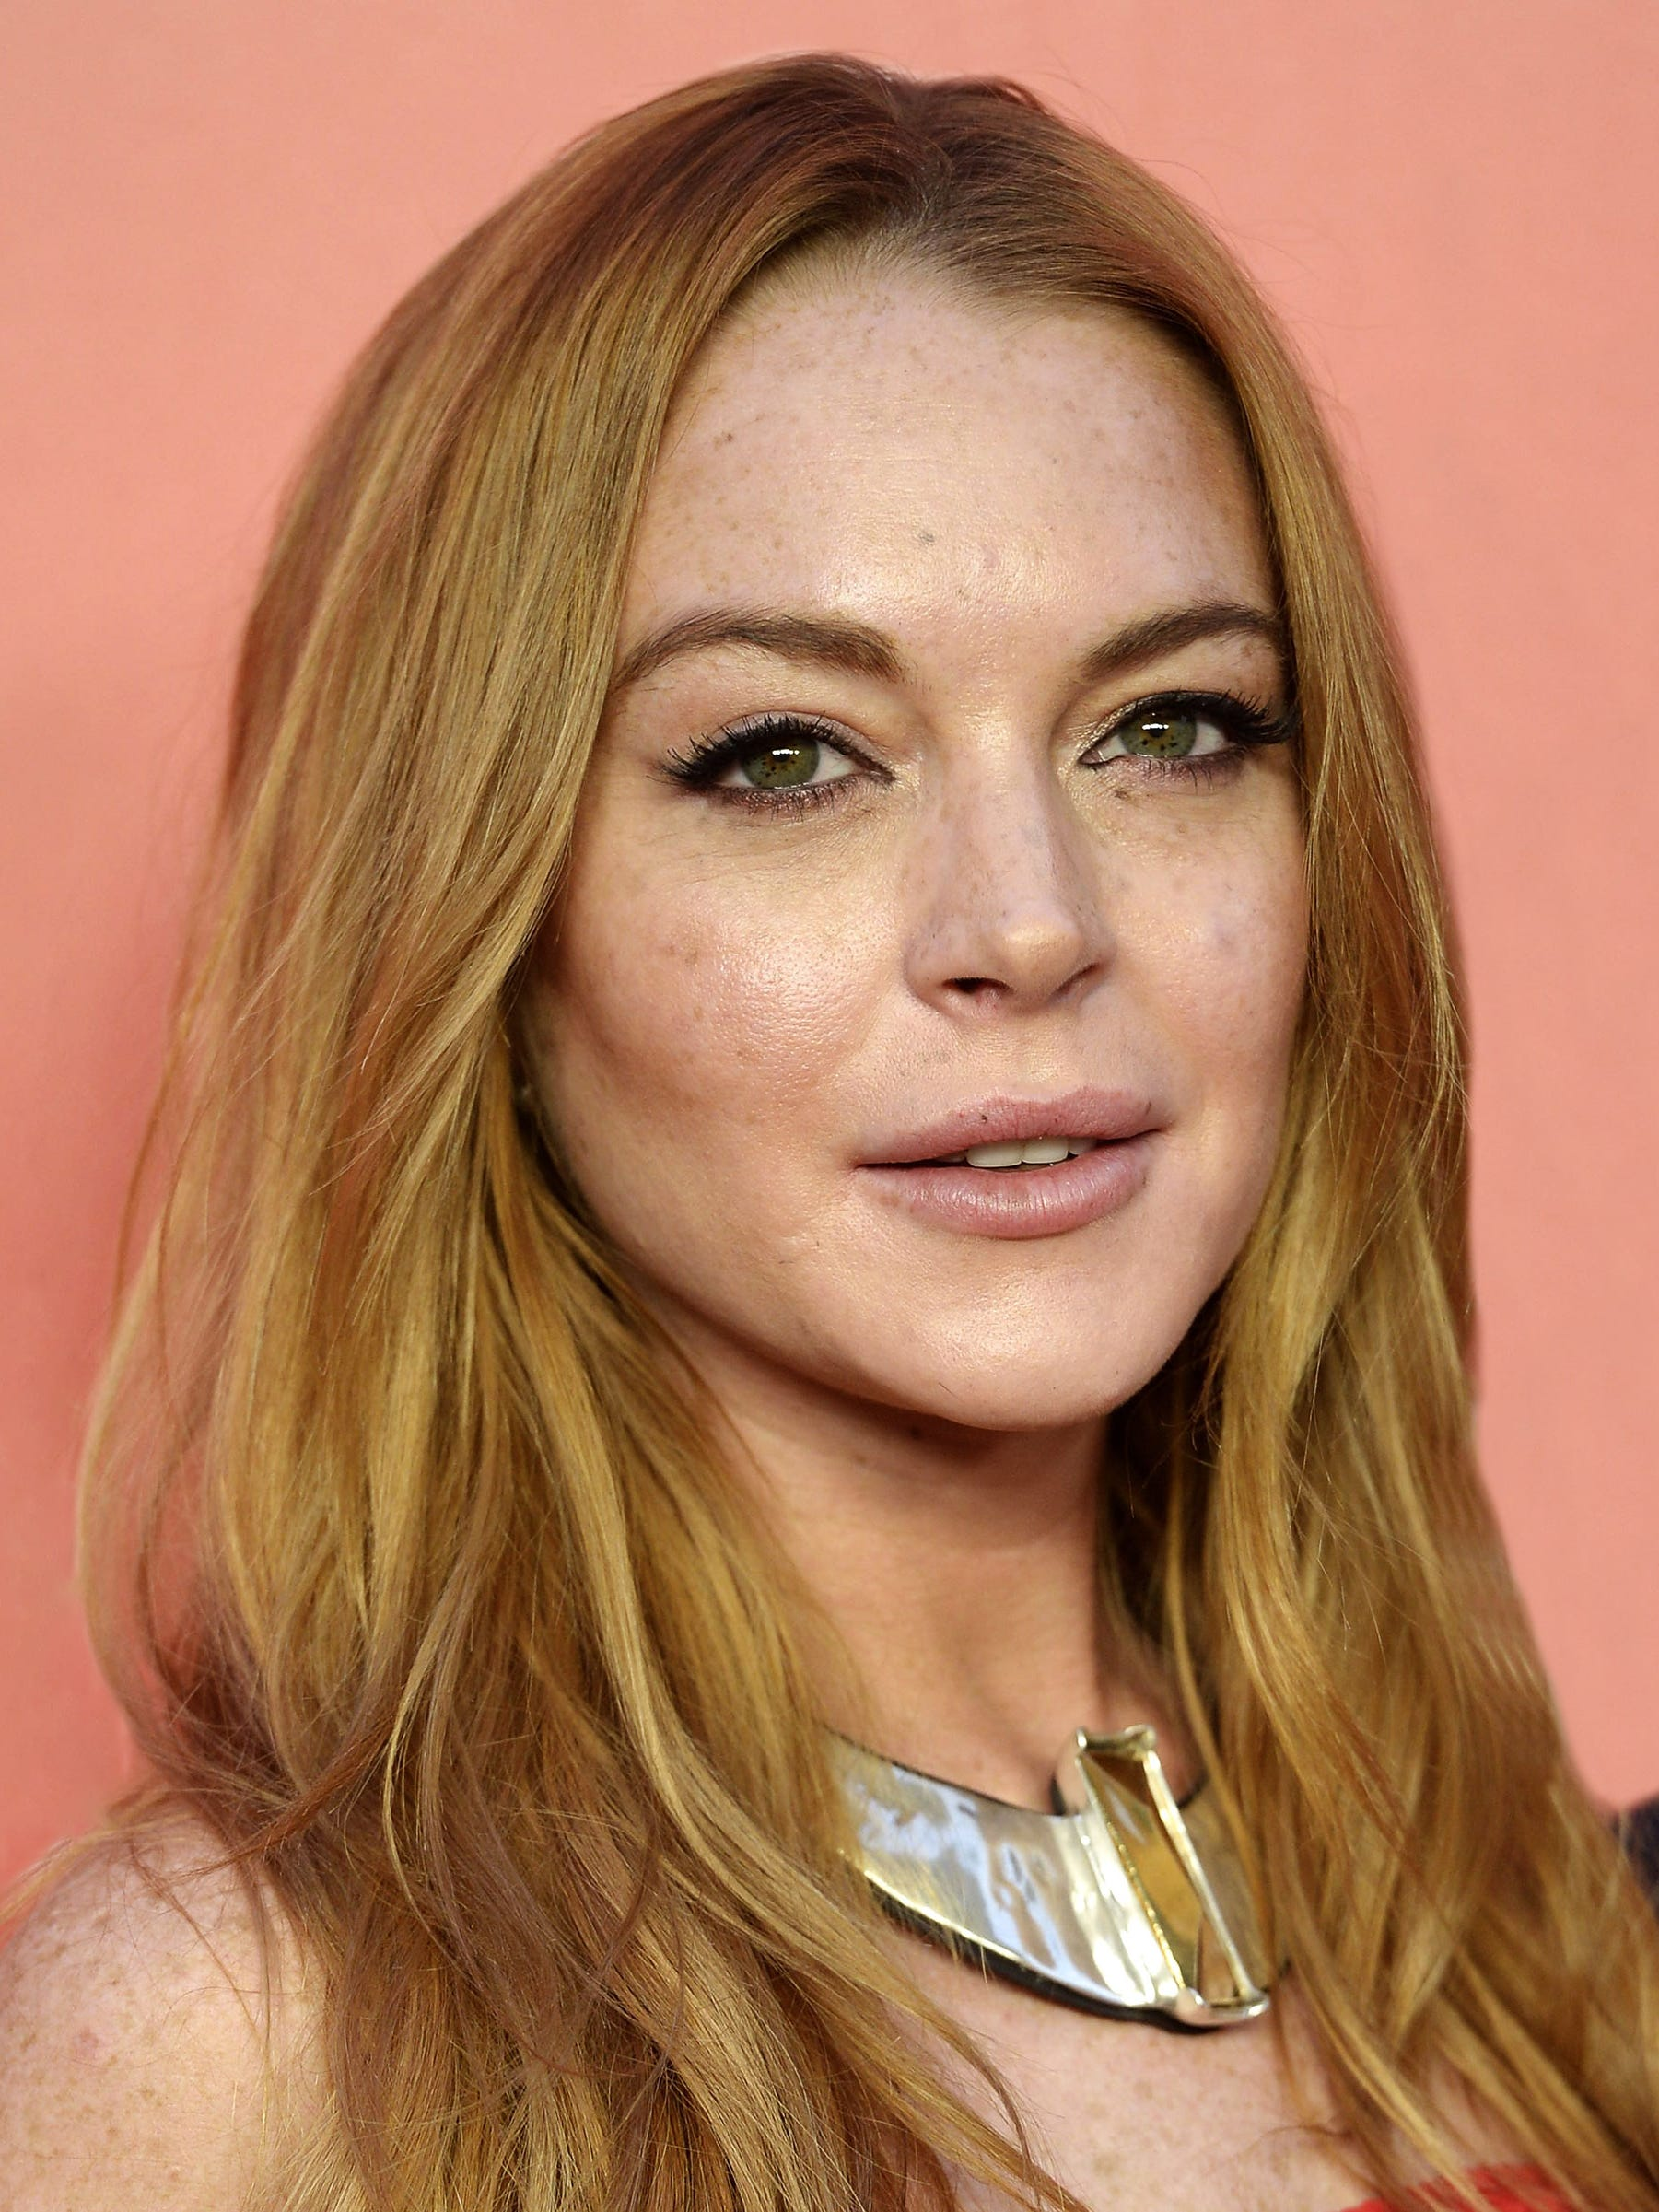 Lindsay Lohan New Red Hair Color Instagram Photos